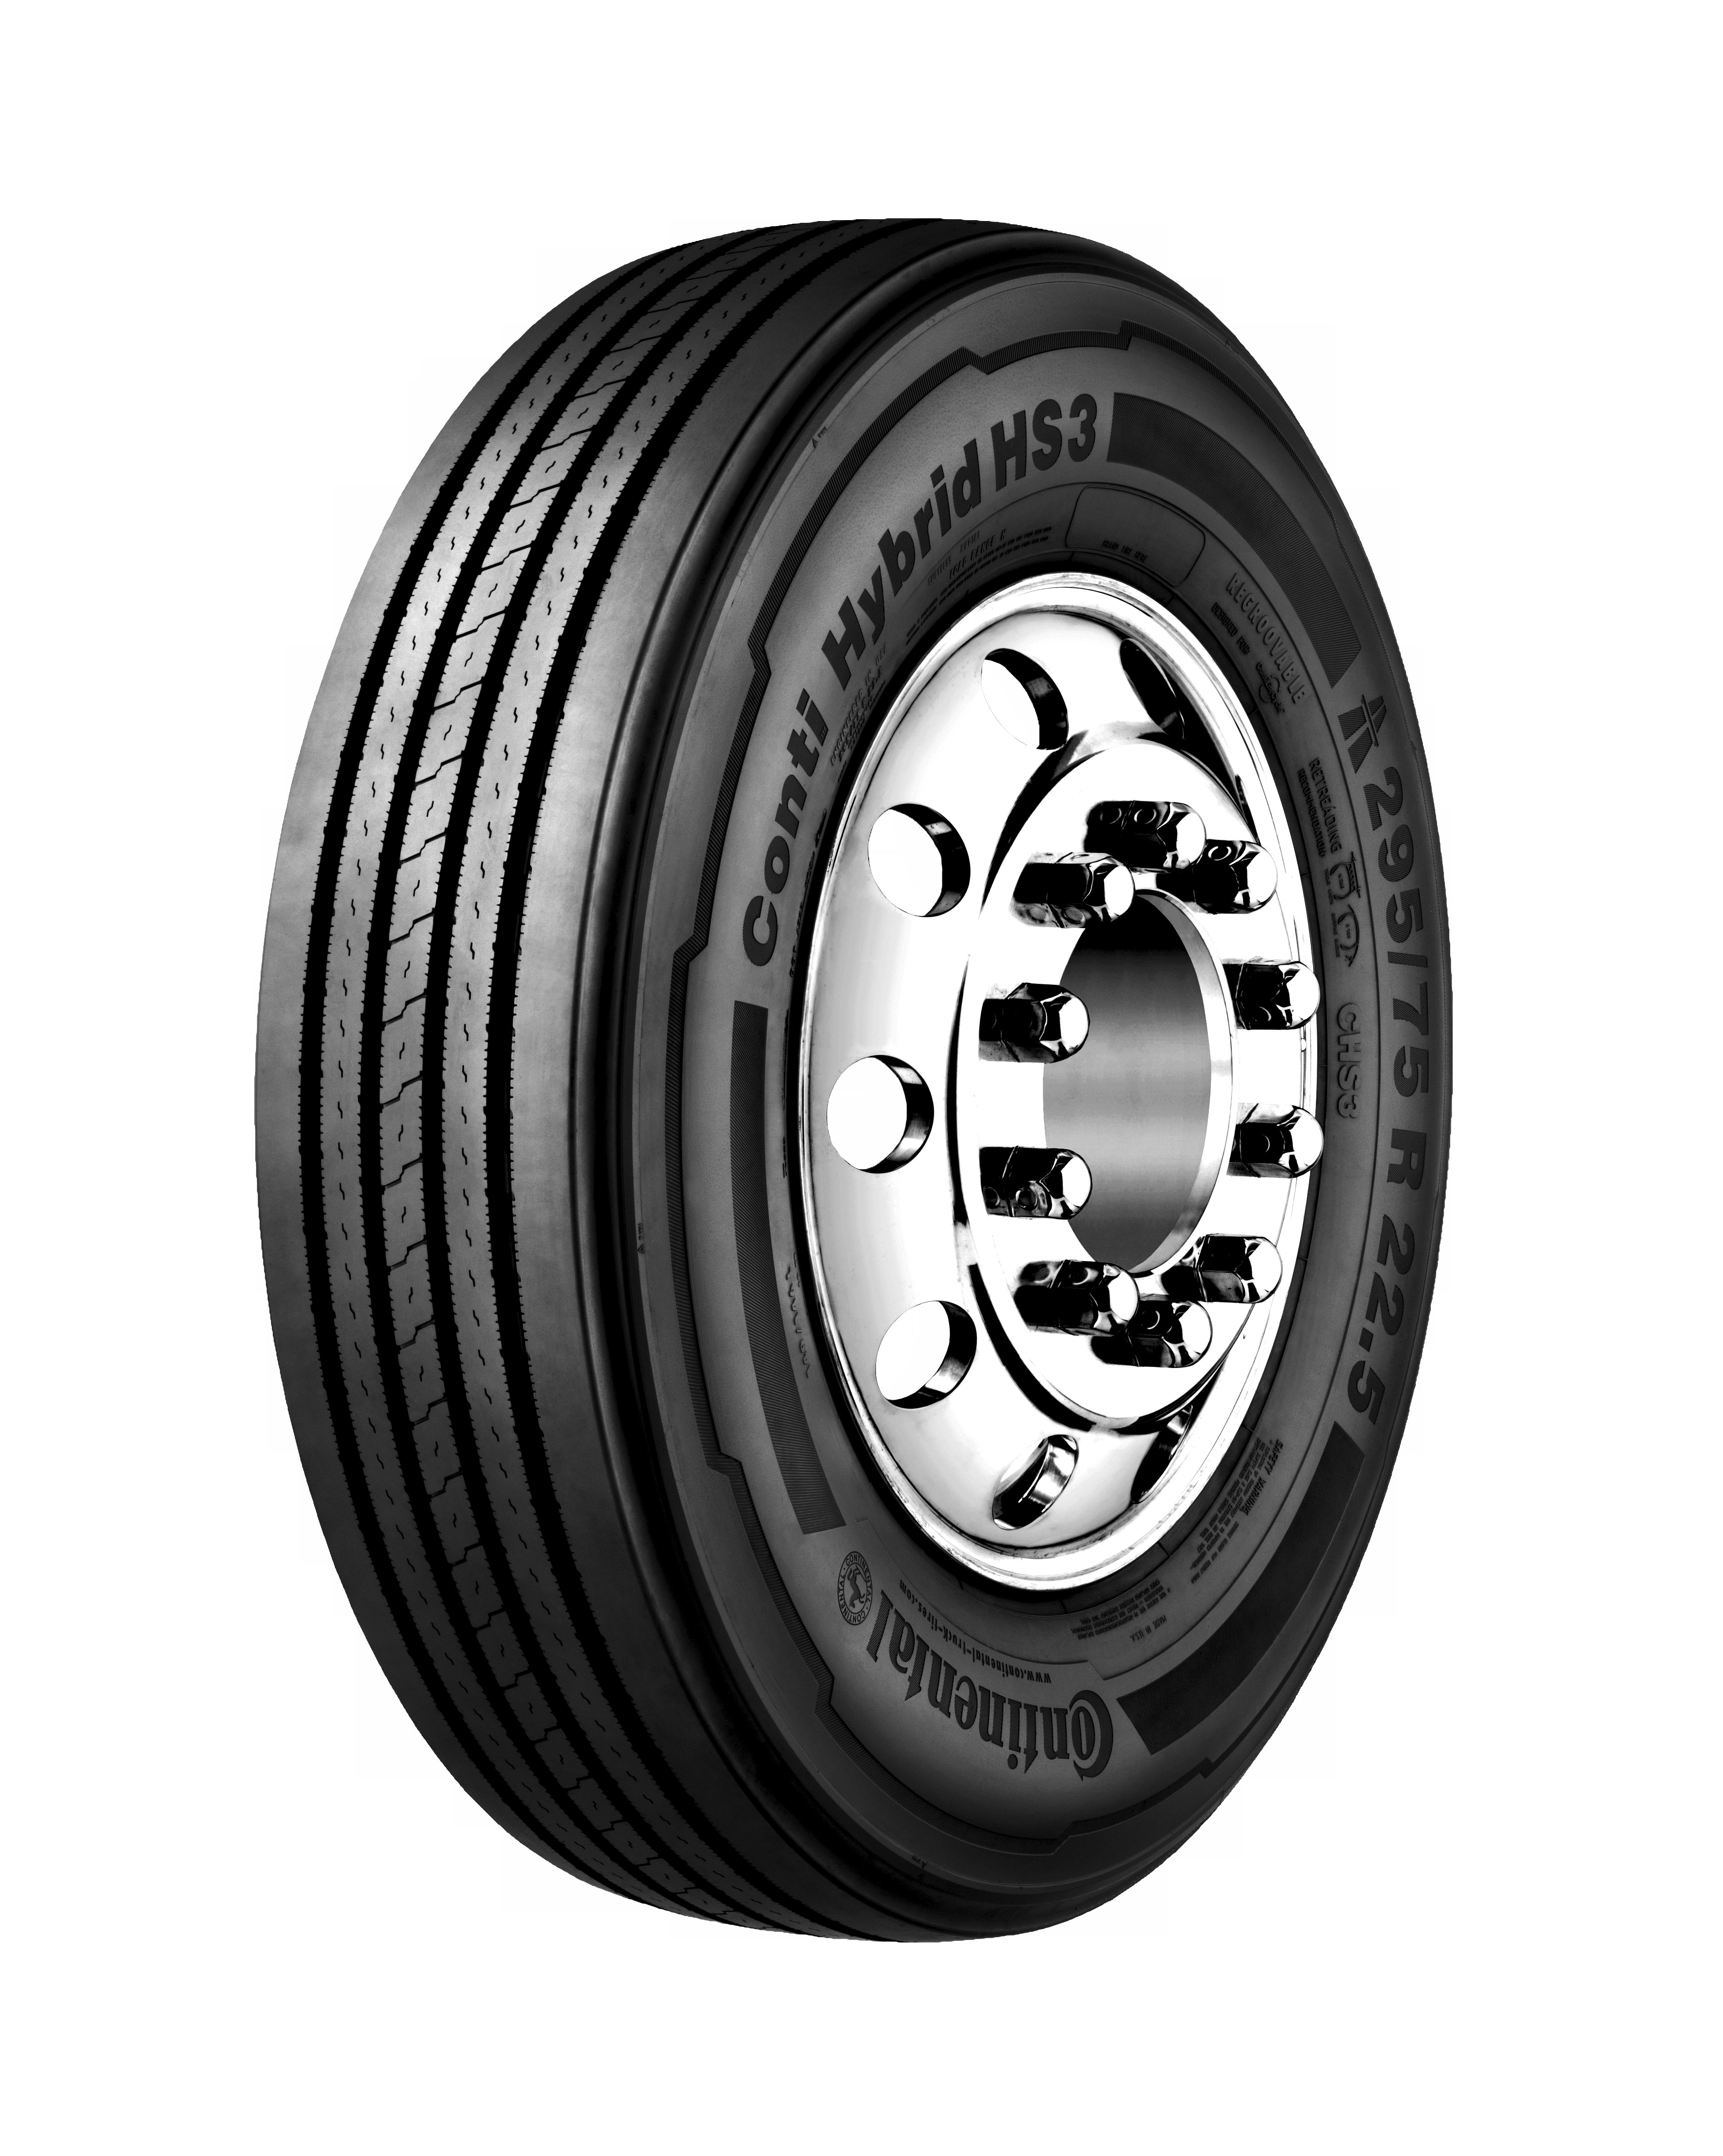 Anvelope trailer CONTINENTAL Conti Hybrid HS3 (CHS3) 315/80 R22.5 156/150L